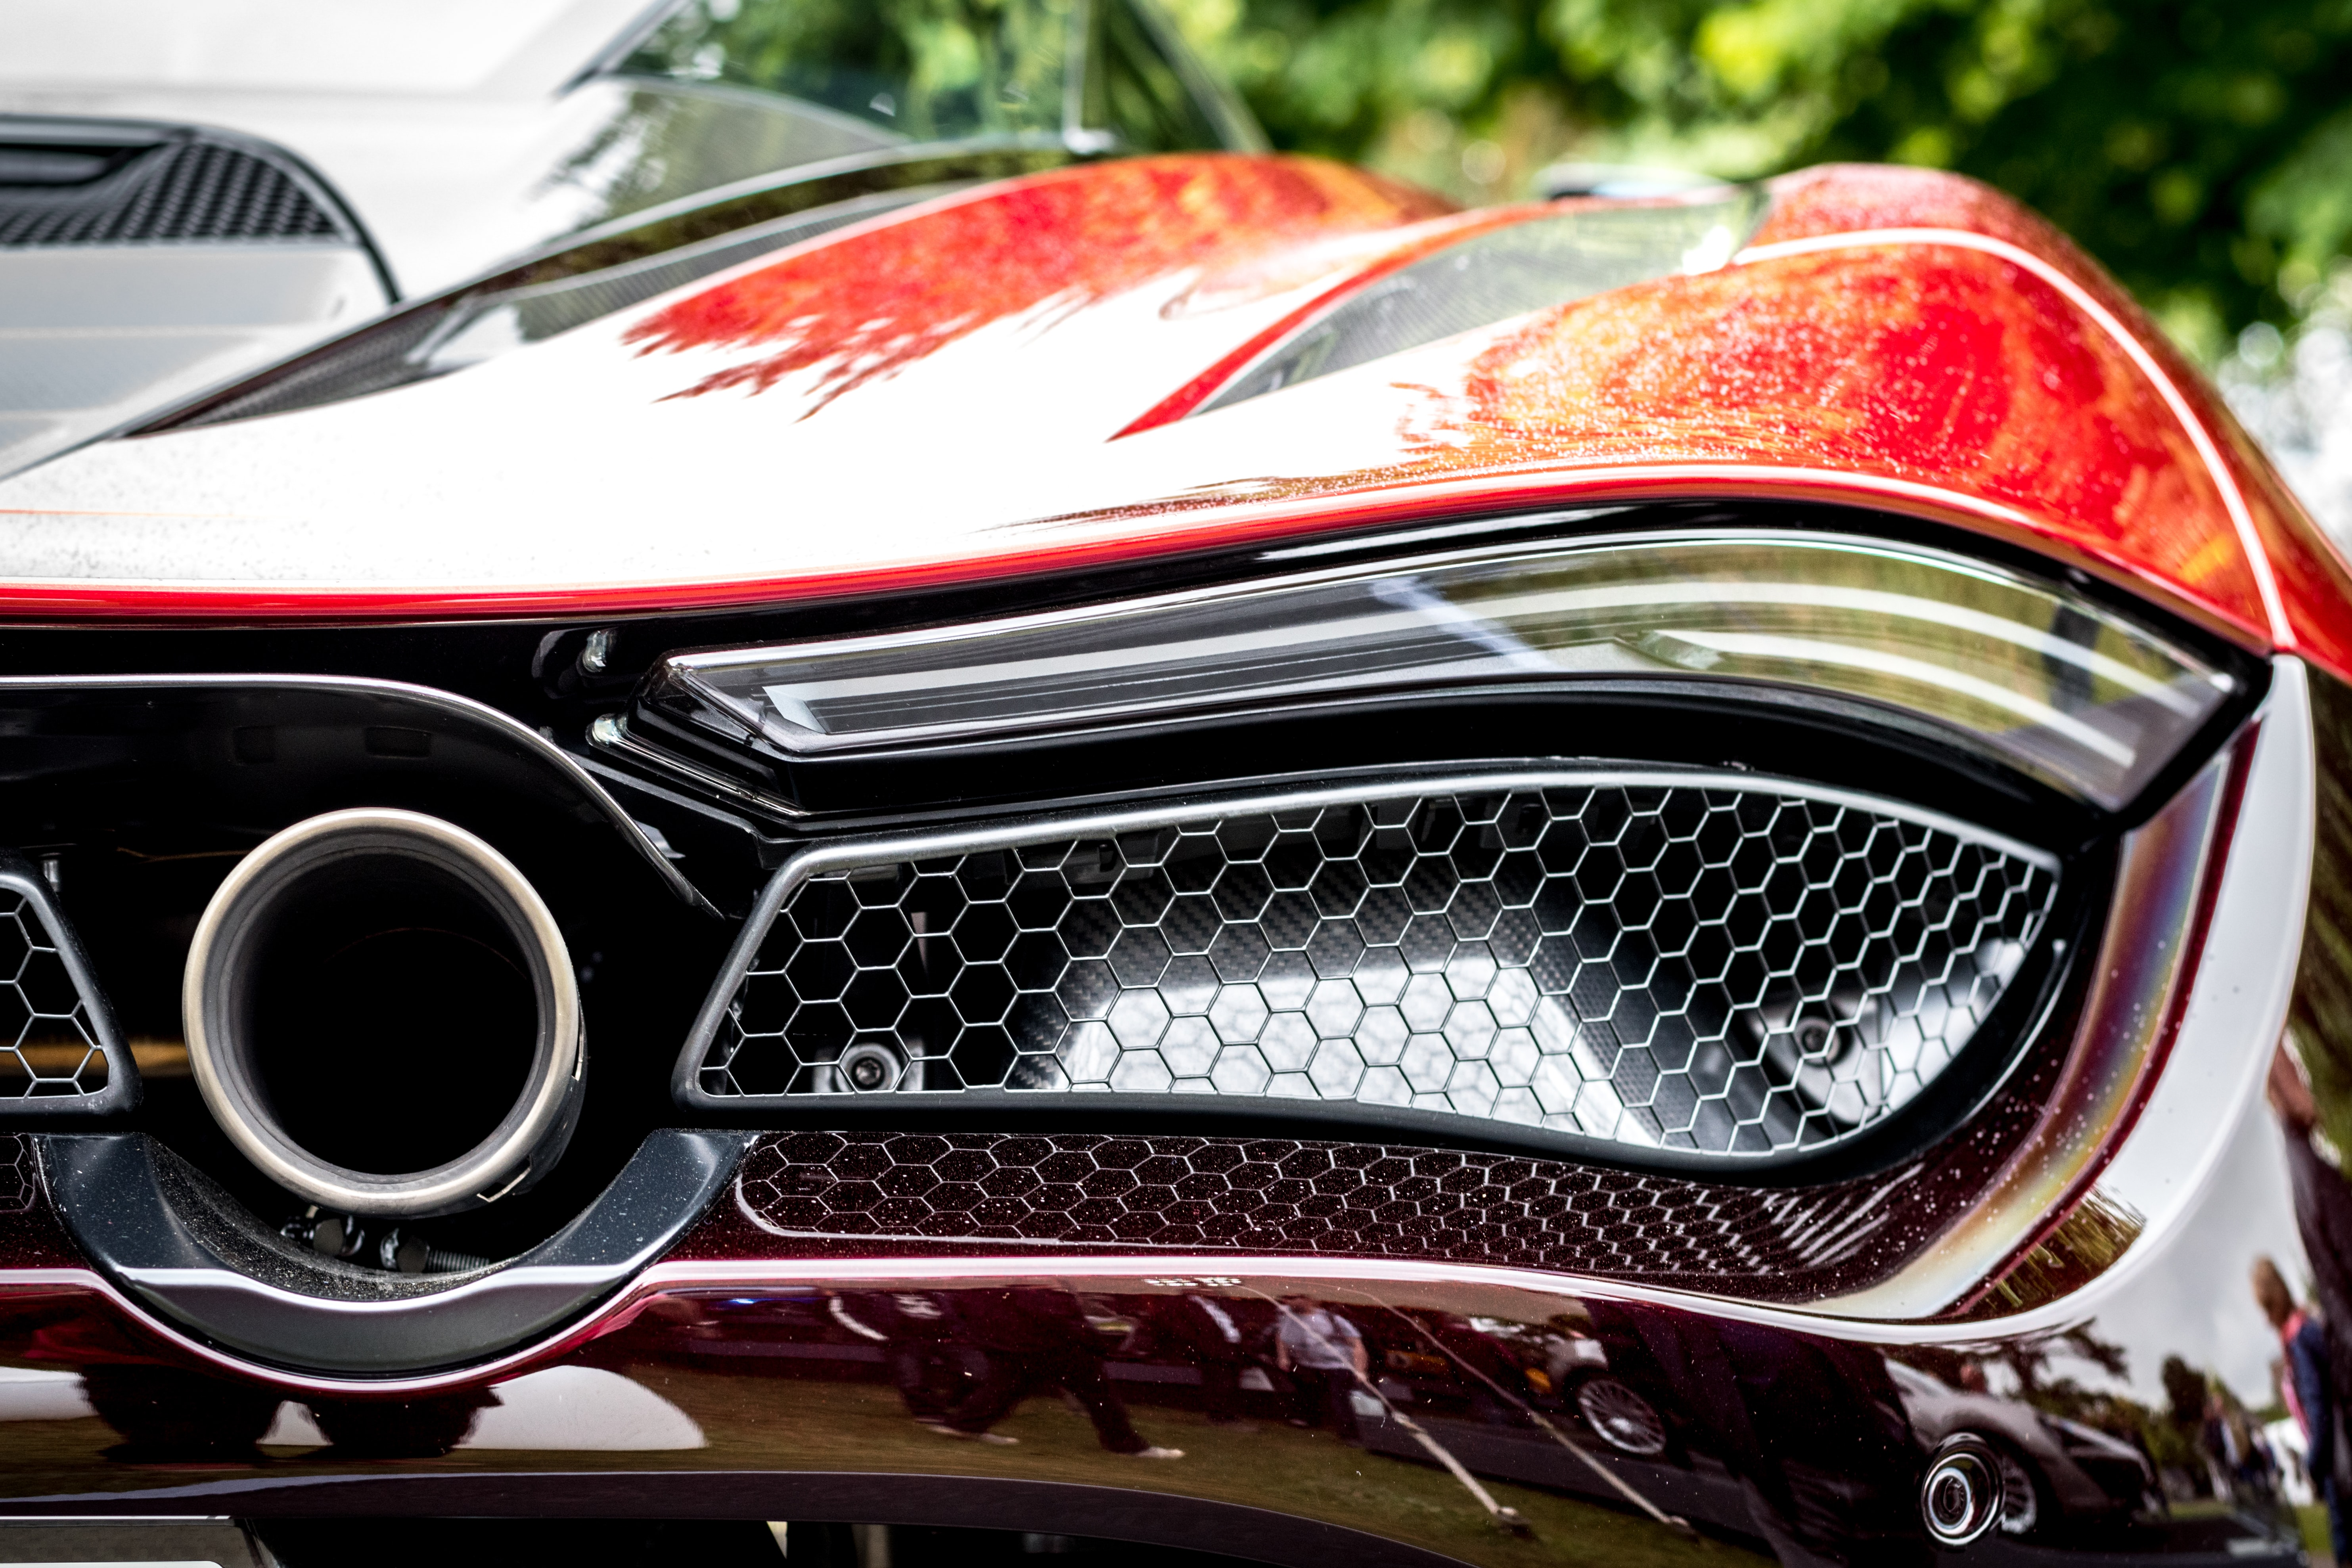 Macro view of a sports car's chrome grille and exhaust pipe.